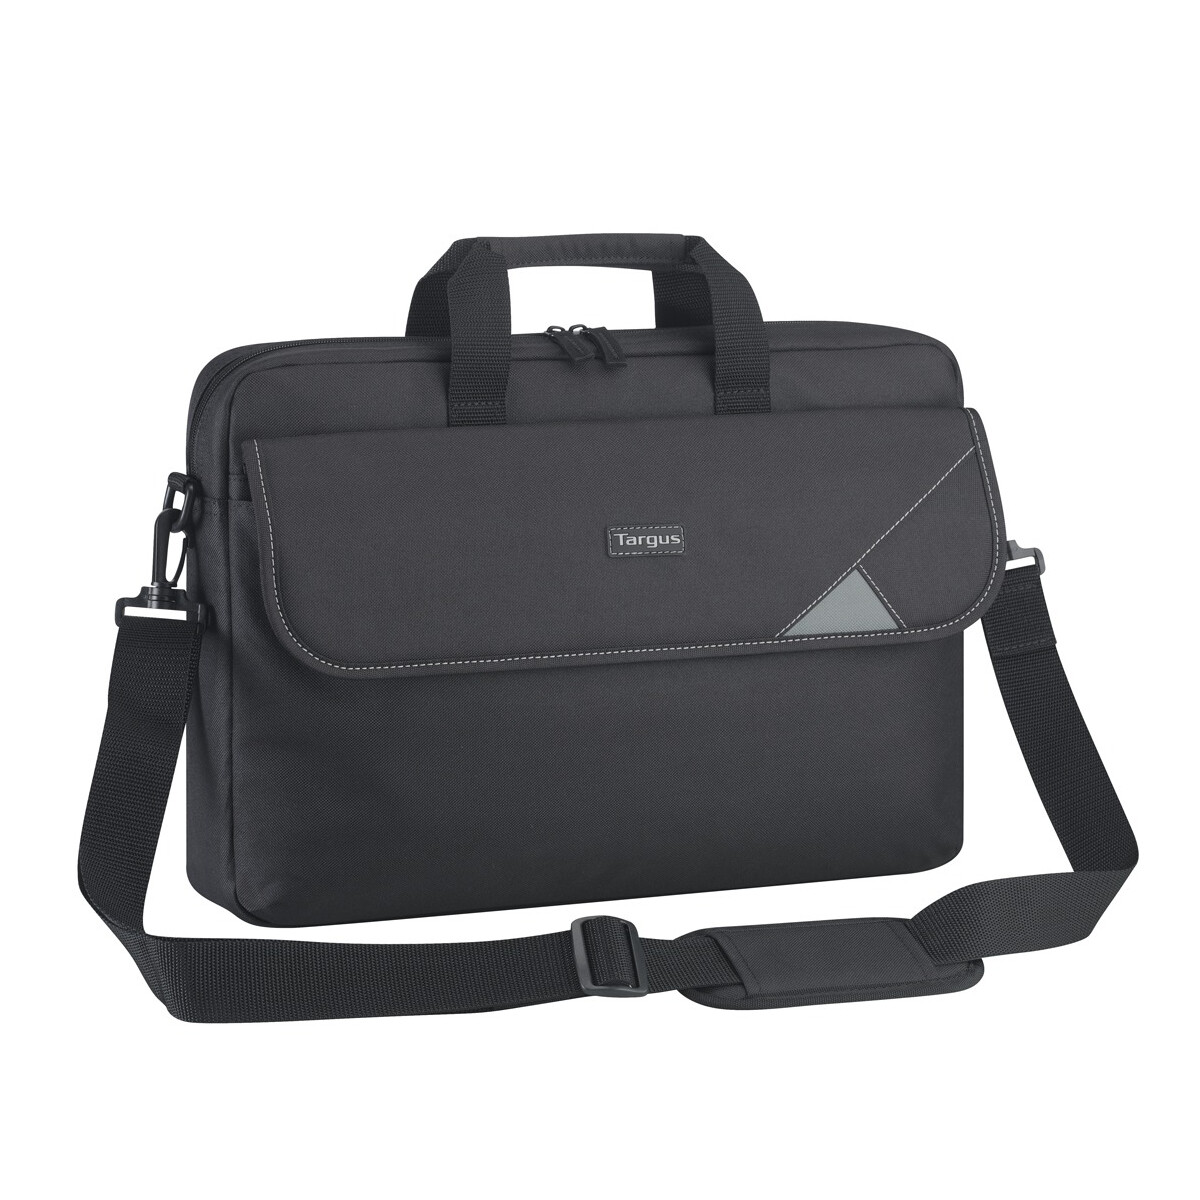 "TARGUS TBT265AU, 14.1"" INTELLECT TOPLOAD LAPTOP CASE"